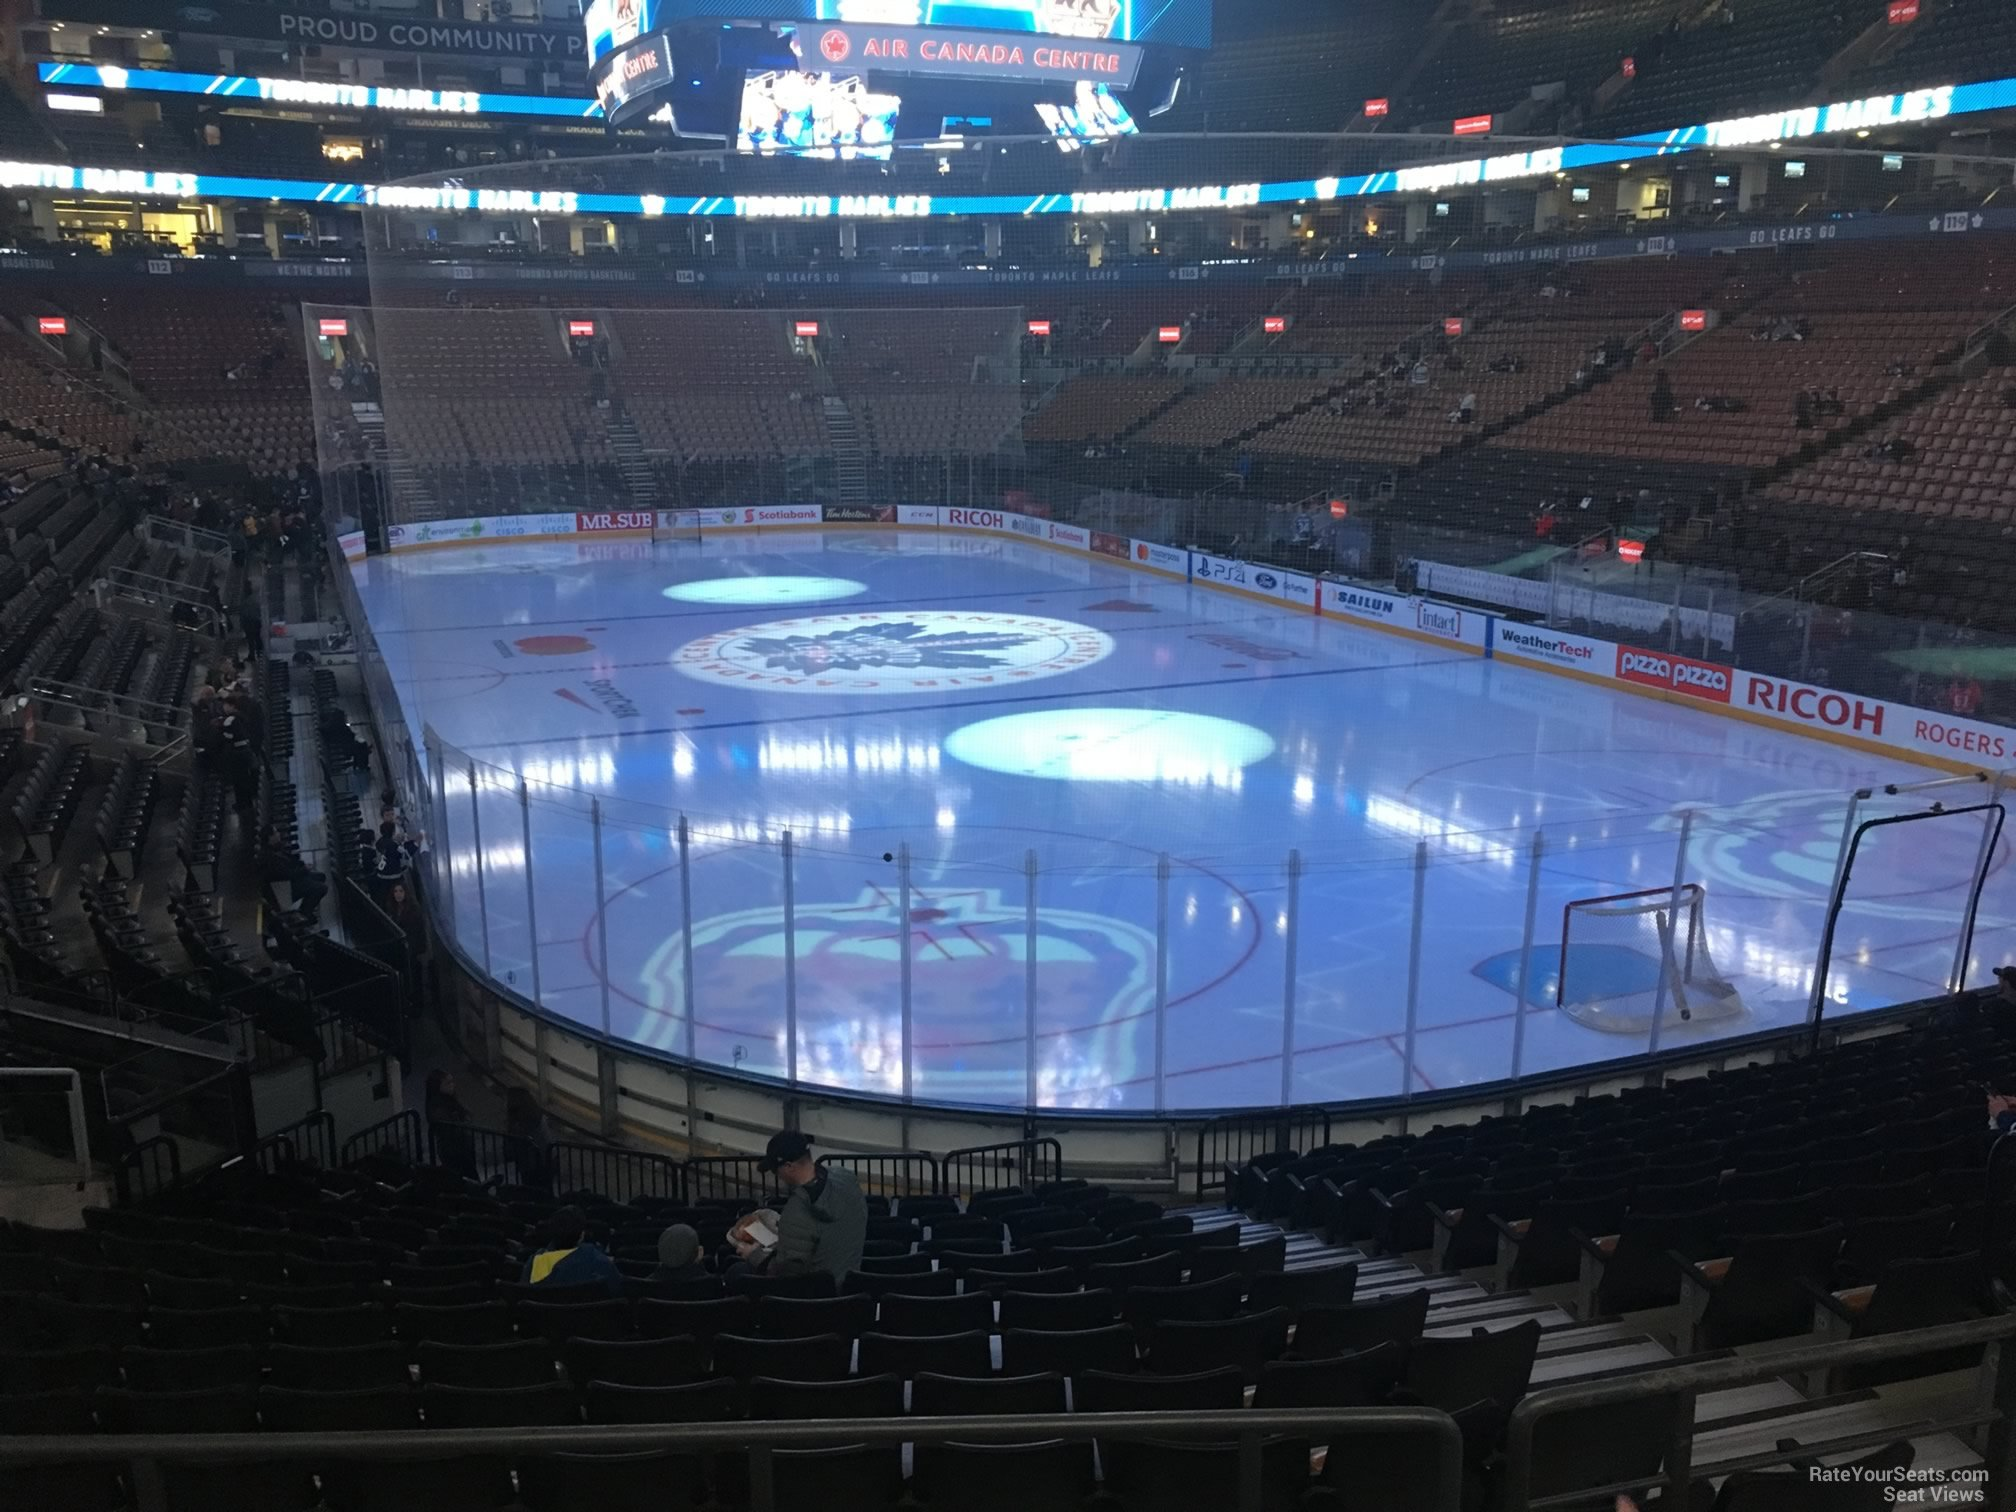 Toronto Maple Leafs Seat View for Scotiabank Arena Section 104, Row 20